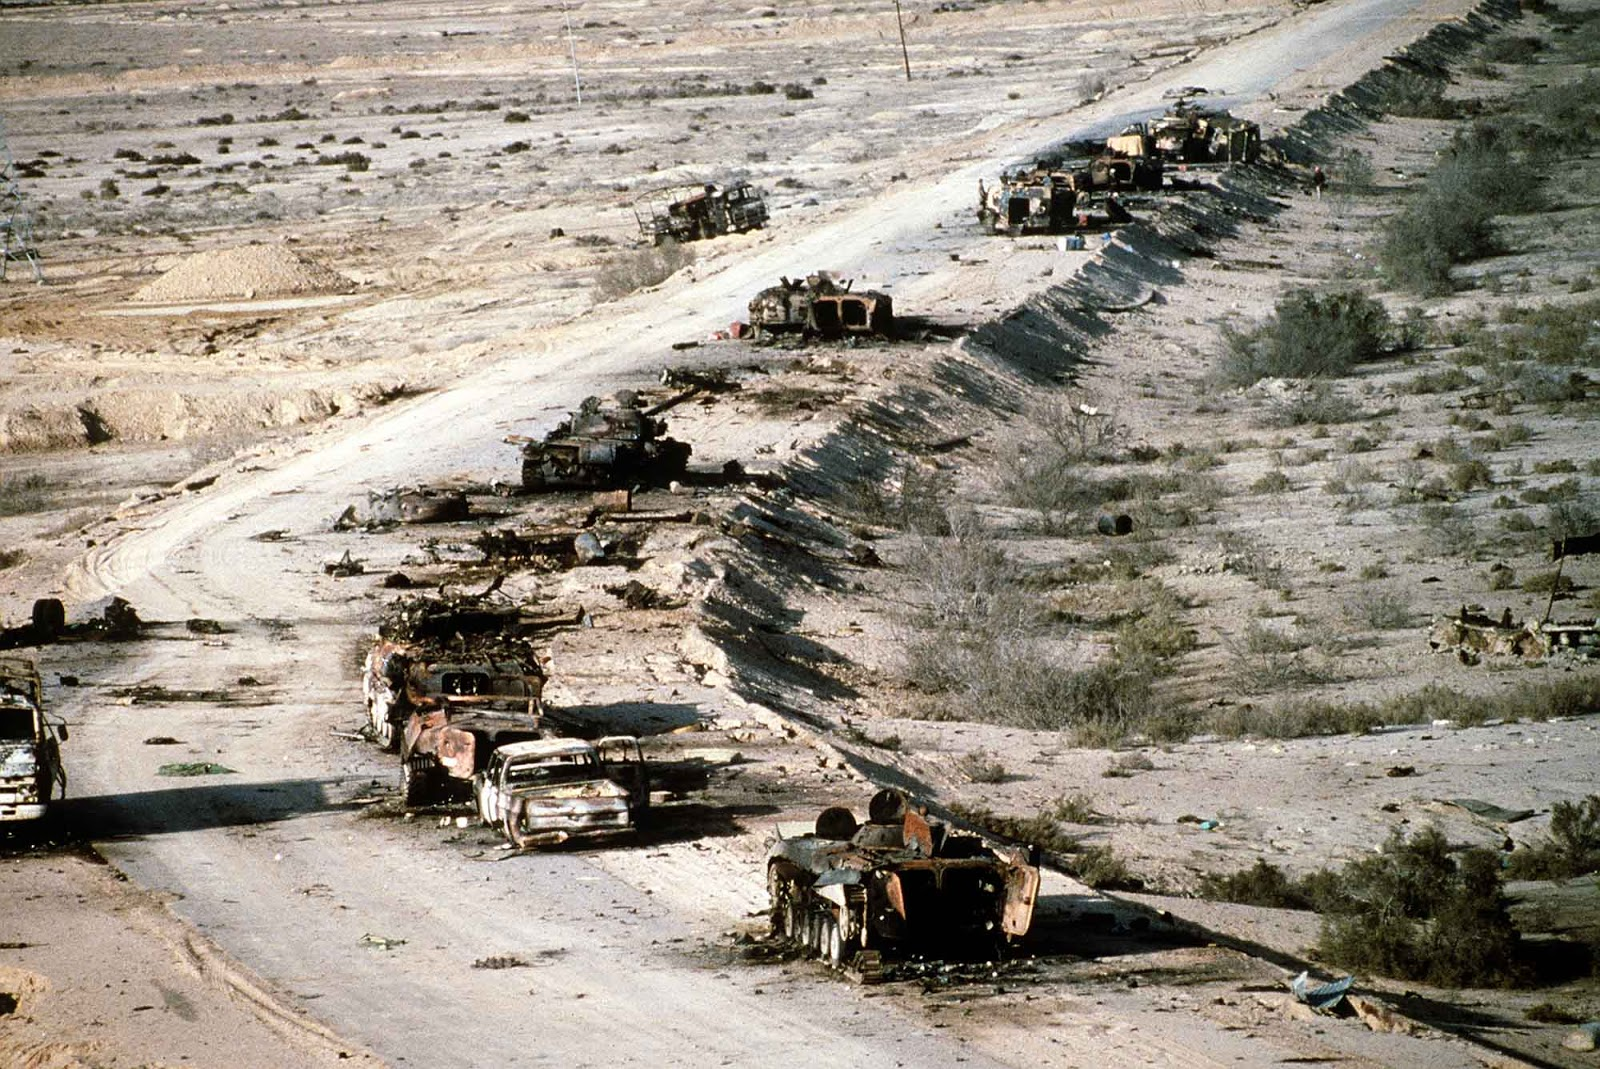 On the inland highway to Basra is mile after mile of burned, smashed, shattered vehicles of every description – tanks, armored cars, trucks, autos, fire trucks, according to the March 18, 1991, Time magazine.